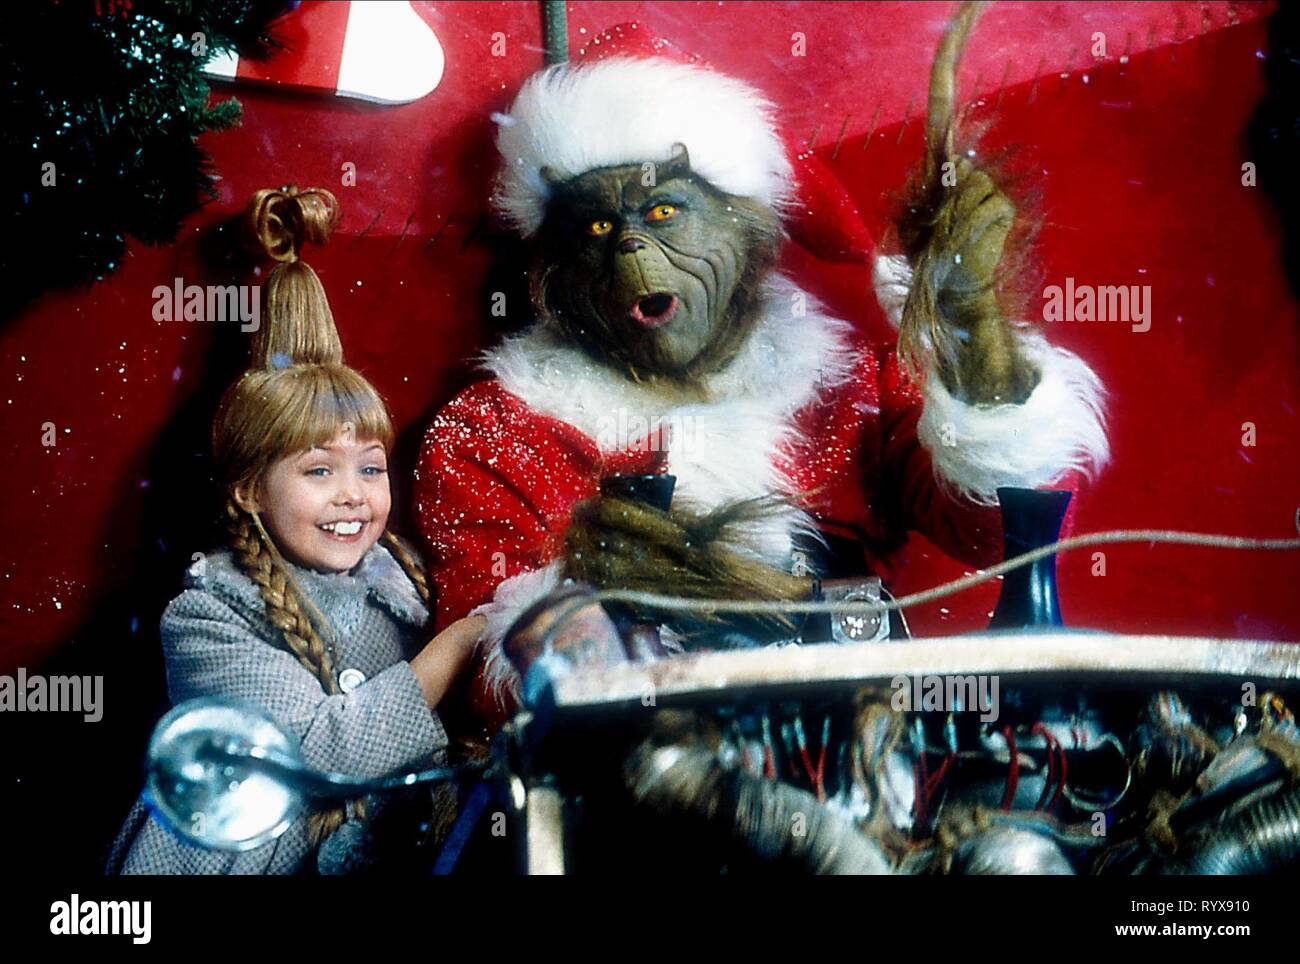 How The Grinch Stole Christmas High Resolution Stock Photography And Images Alamy